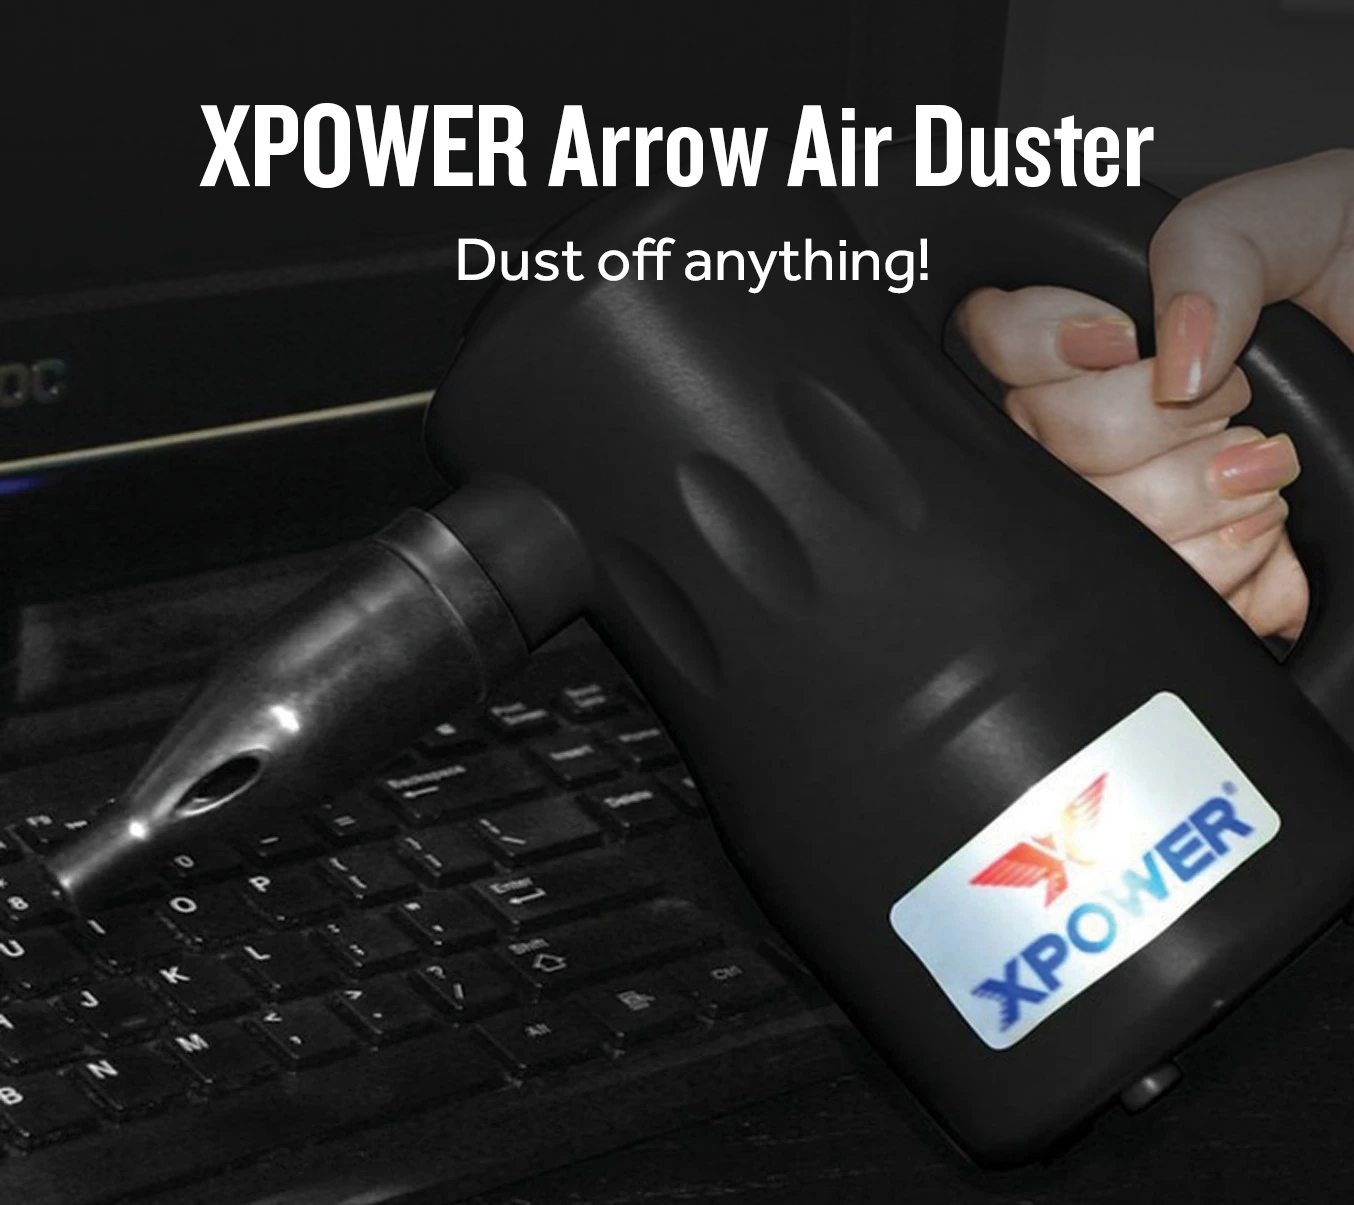 XPOWER Arrow Pro A-2 Multi-Use Electronic Air Duster - Black